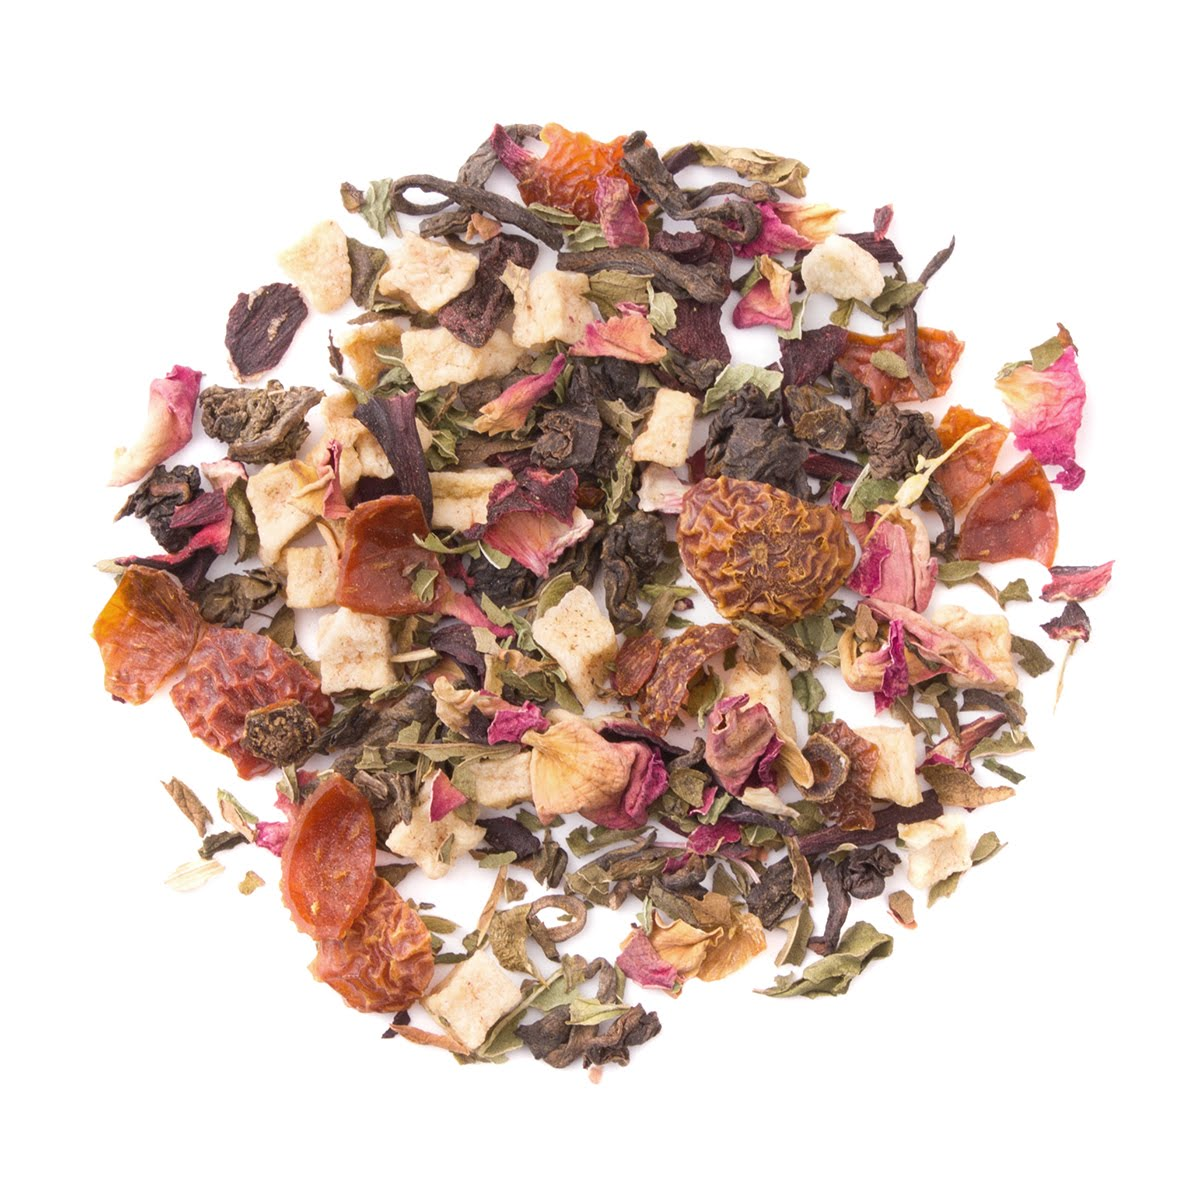 Loose Leaf Tea & Herb Blends - Teas & Botanicals - Heavenly Tea Leaves